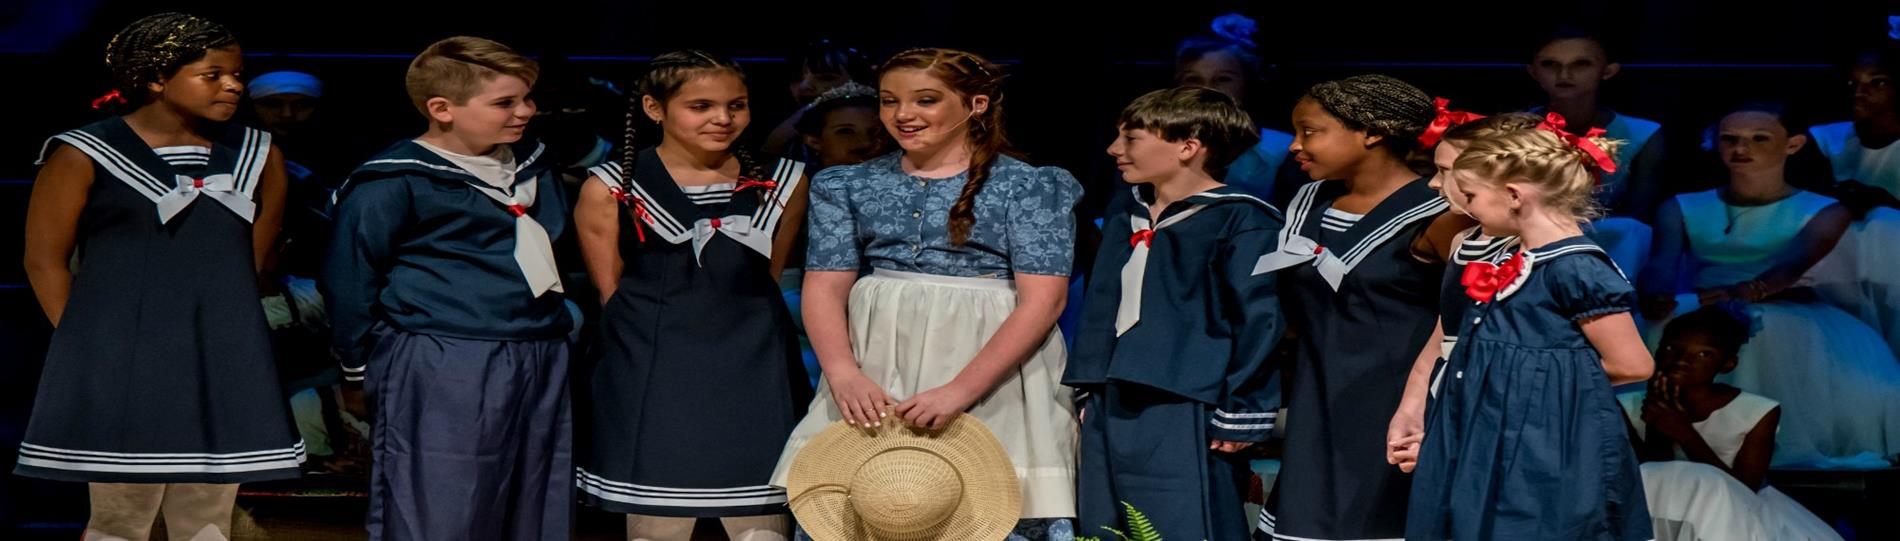 cast of IES Sound of Music on stage